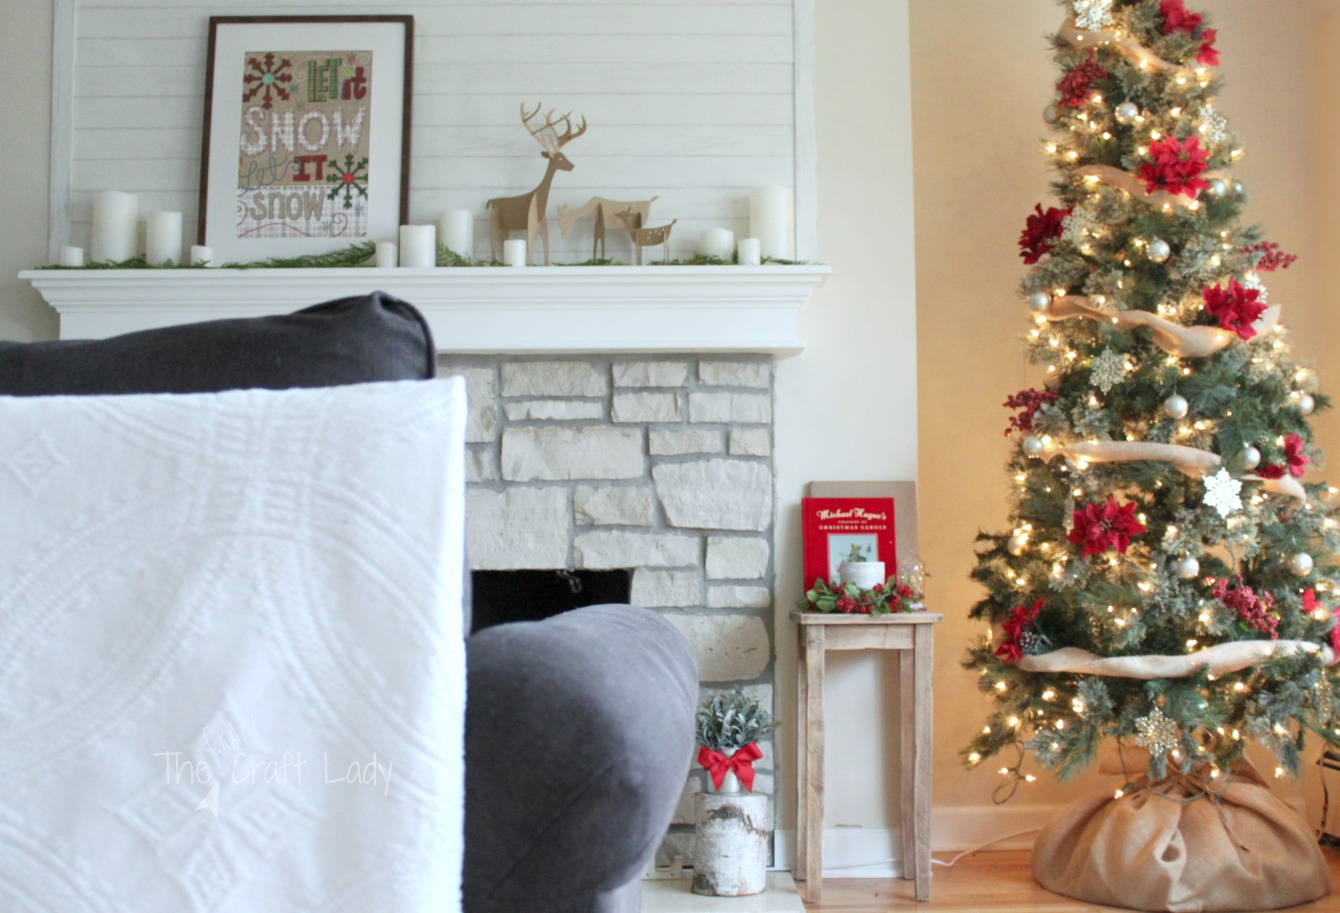 Dollar Store Christmas Decorations - how to decorate a tree for under $20 and make dollar store wall decor